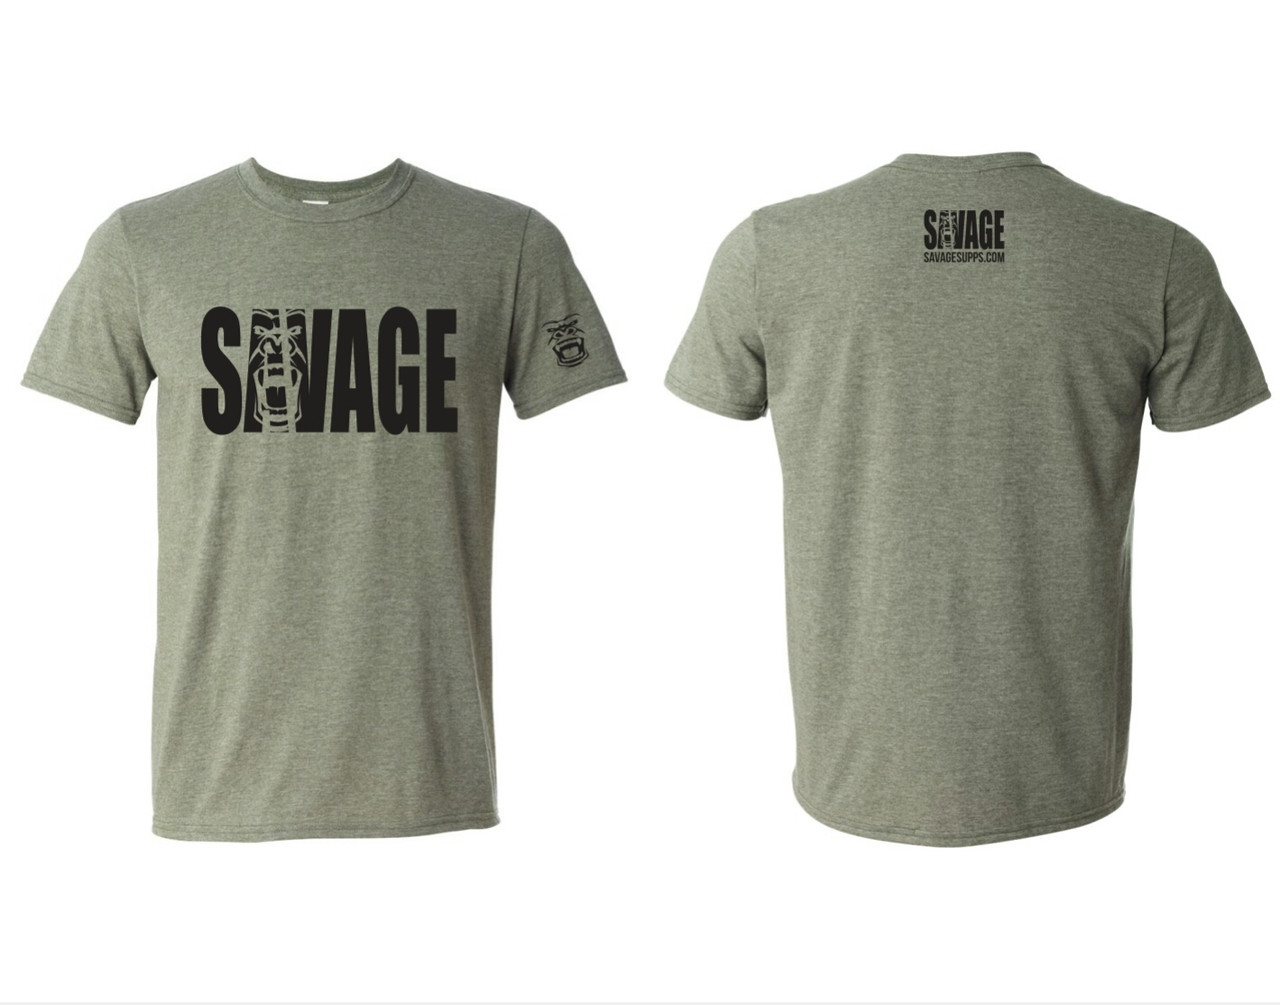 ff36b22468b1 military olive green tight fitting savage t shirt gorilla logo on sleeve. black  lettering savage